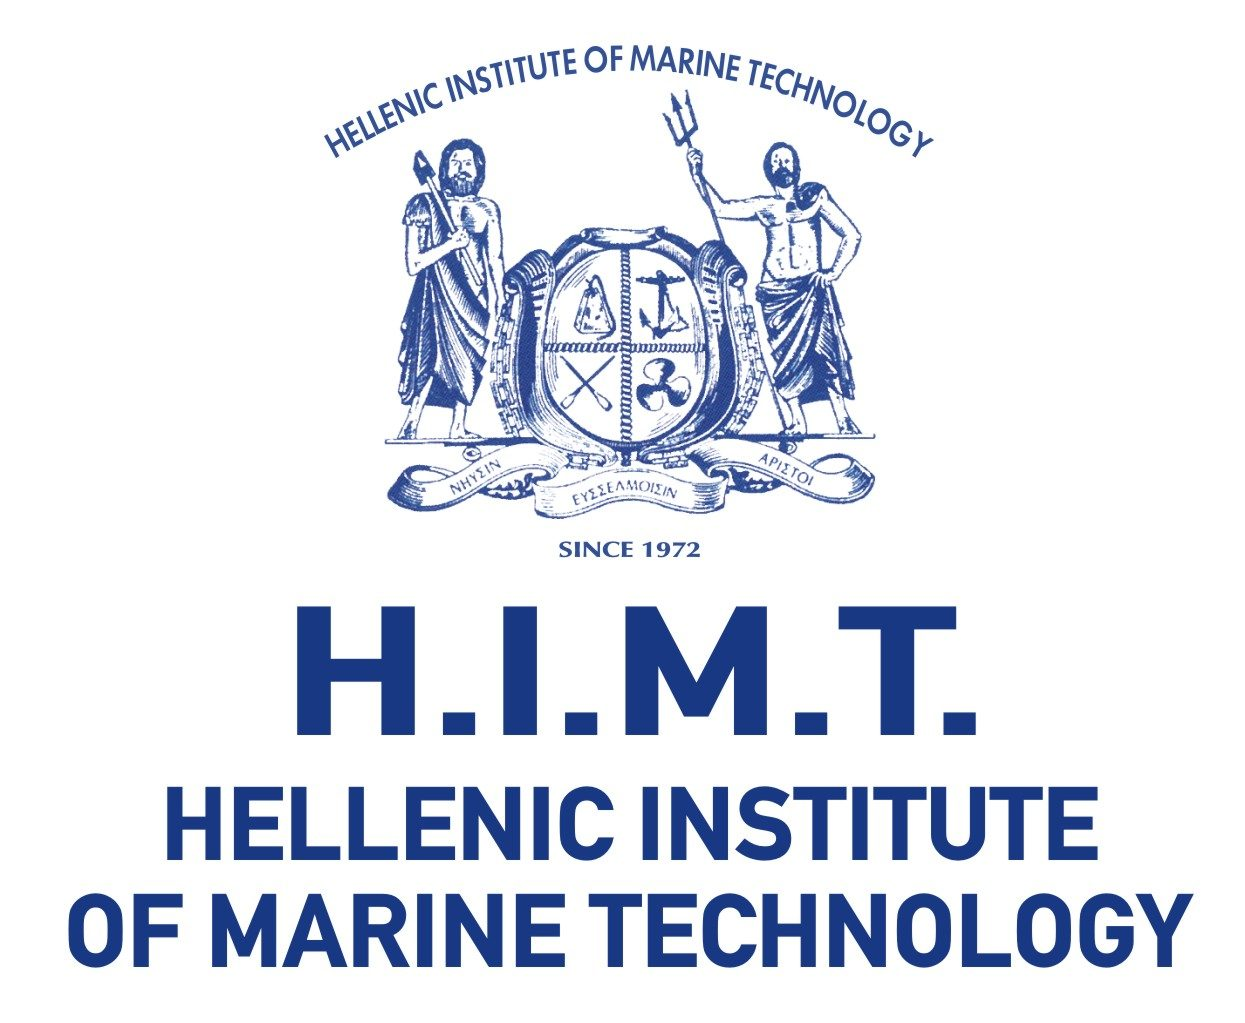 HELLENIC INSTITUTE OF MARINE TECHNOLOGY